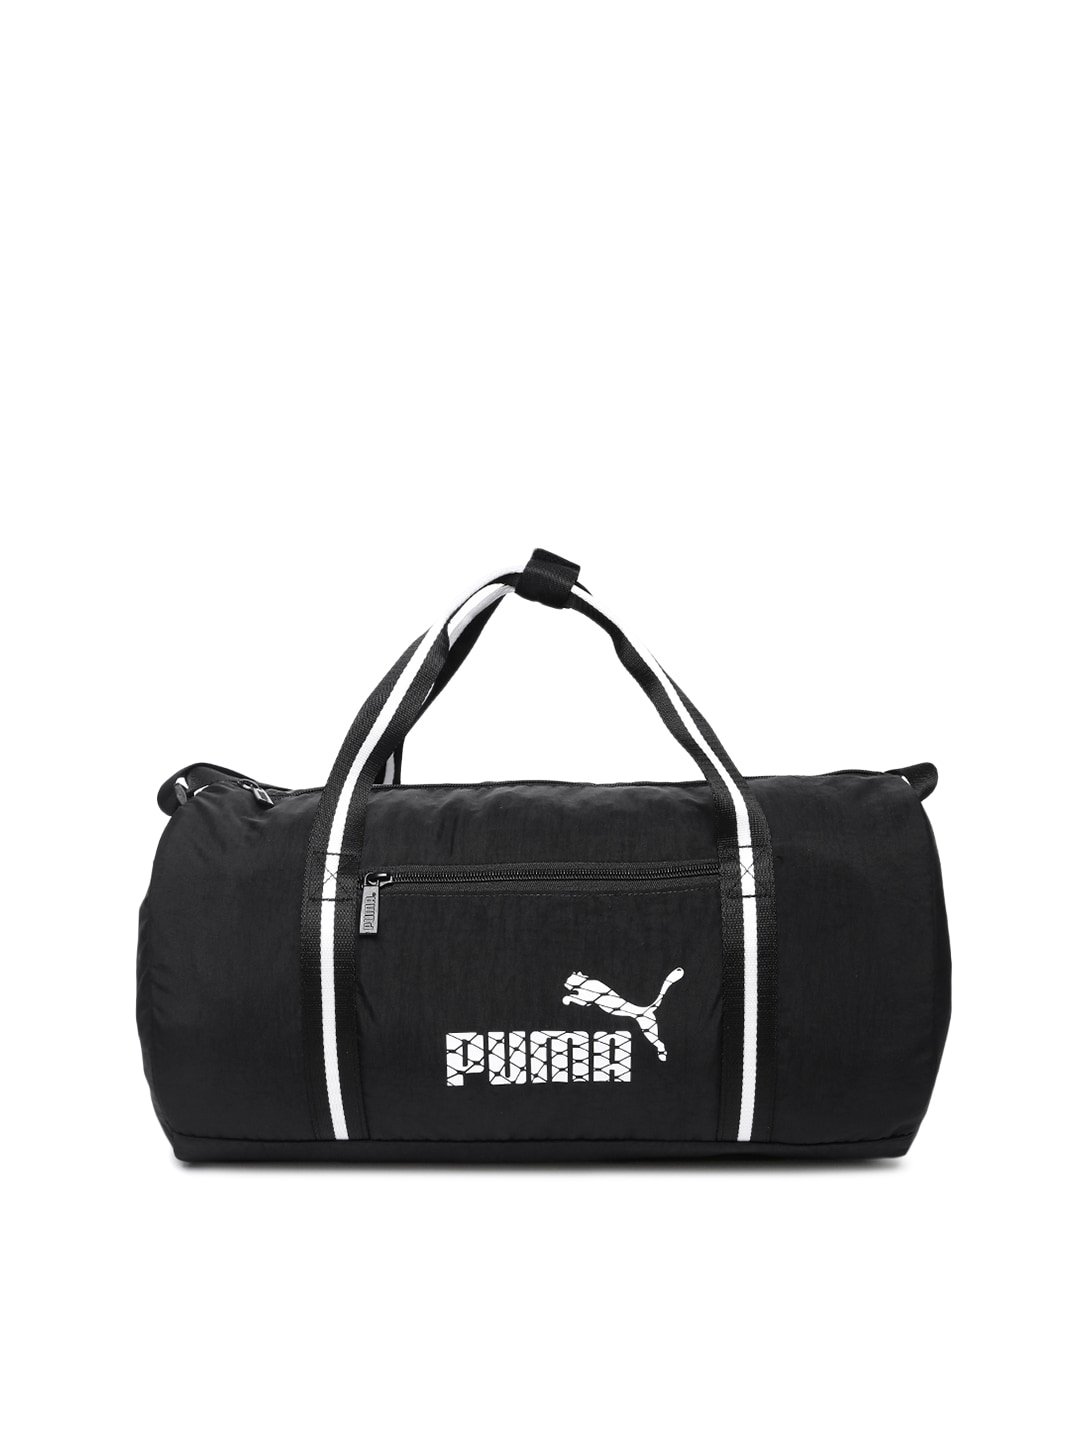 1874be2f59eb Gym Bag - Buy Gym Bags for Men